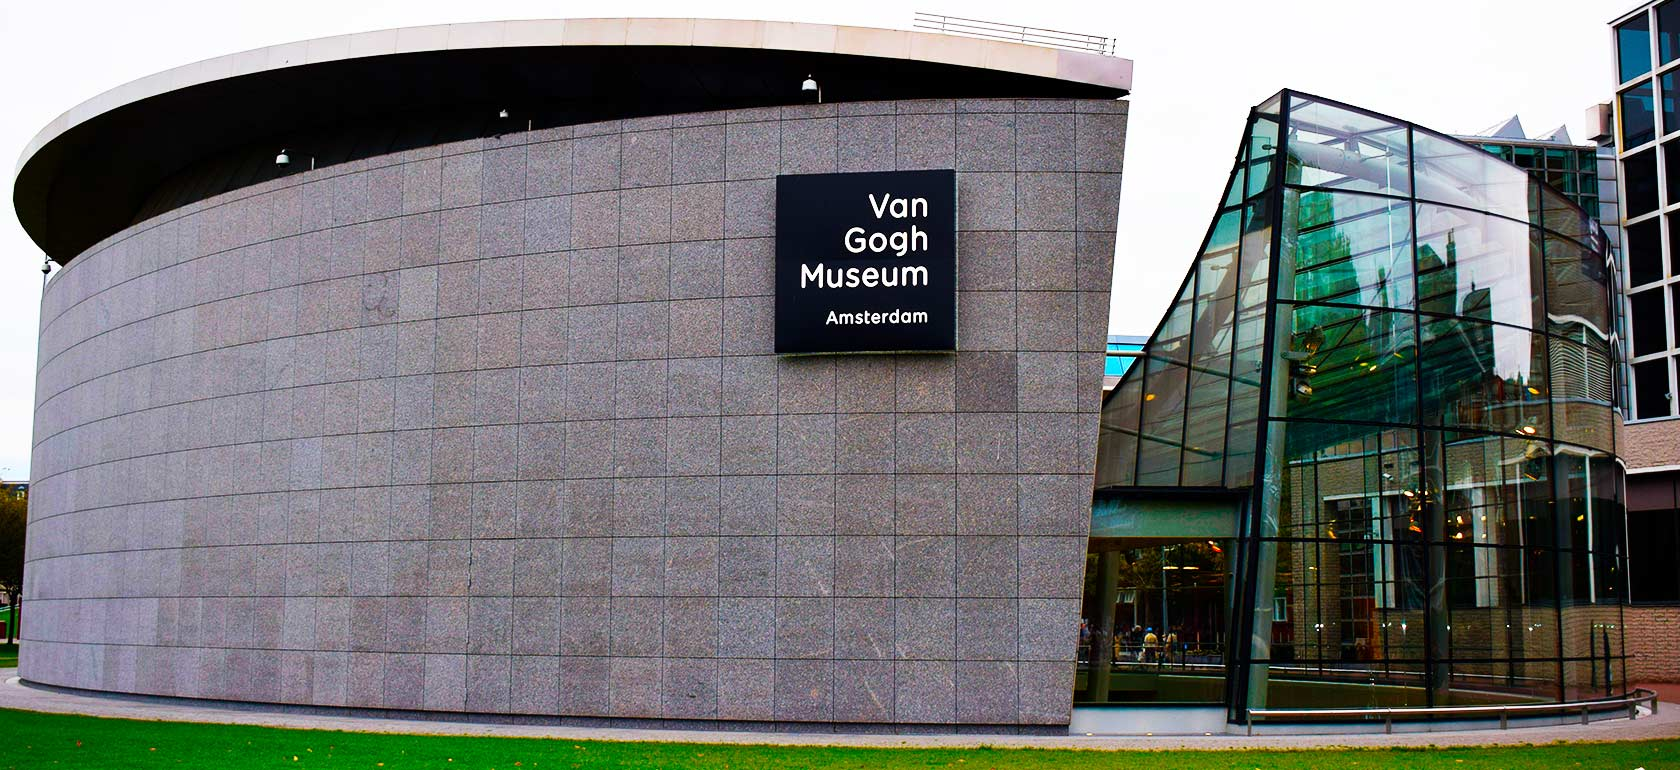 Van Gogh Museum Skip the line tickets!